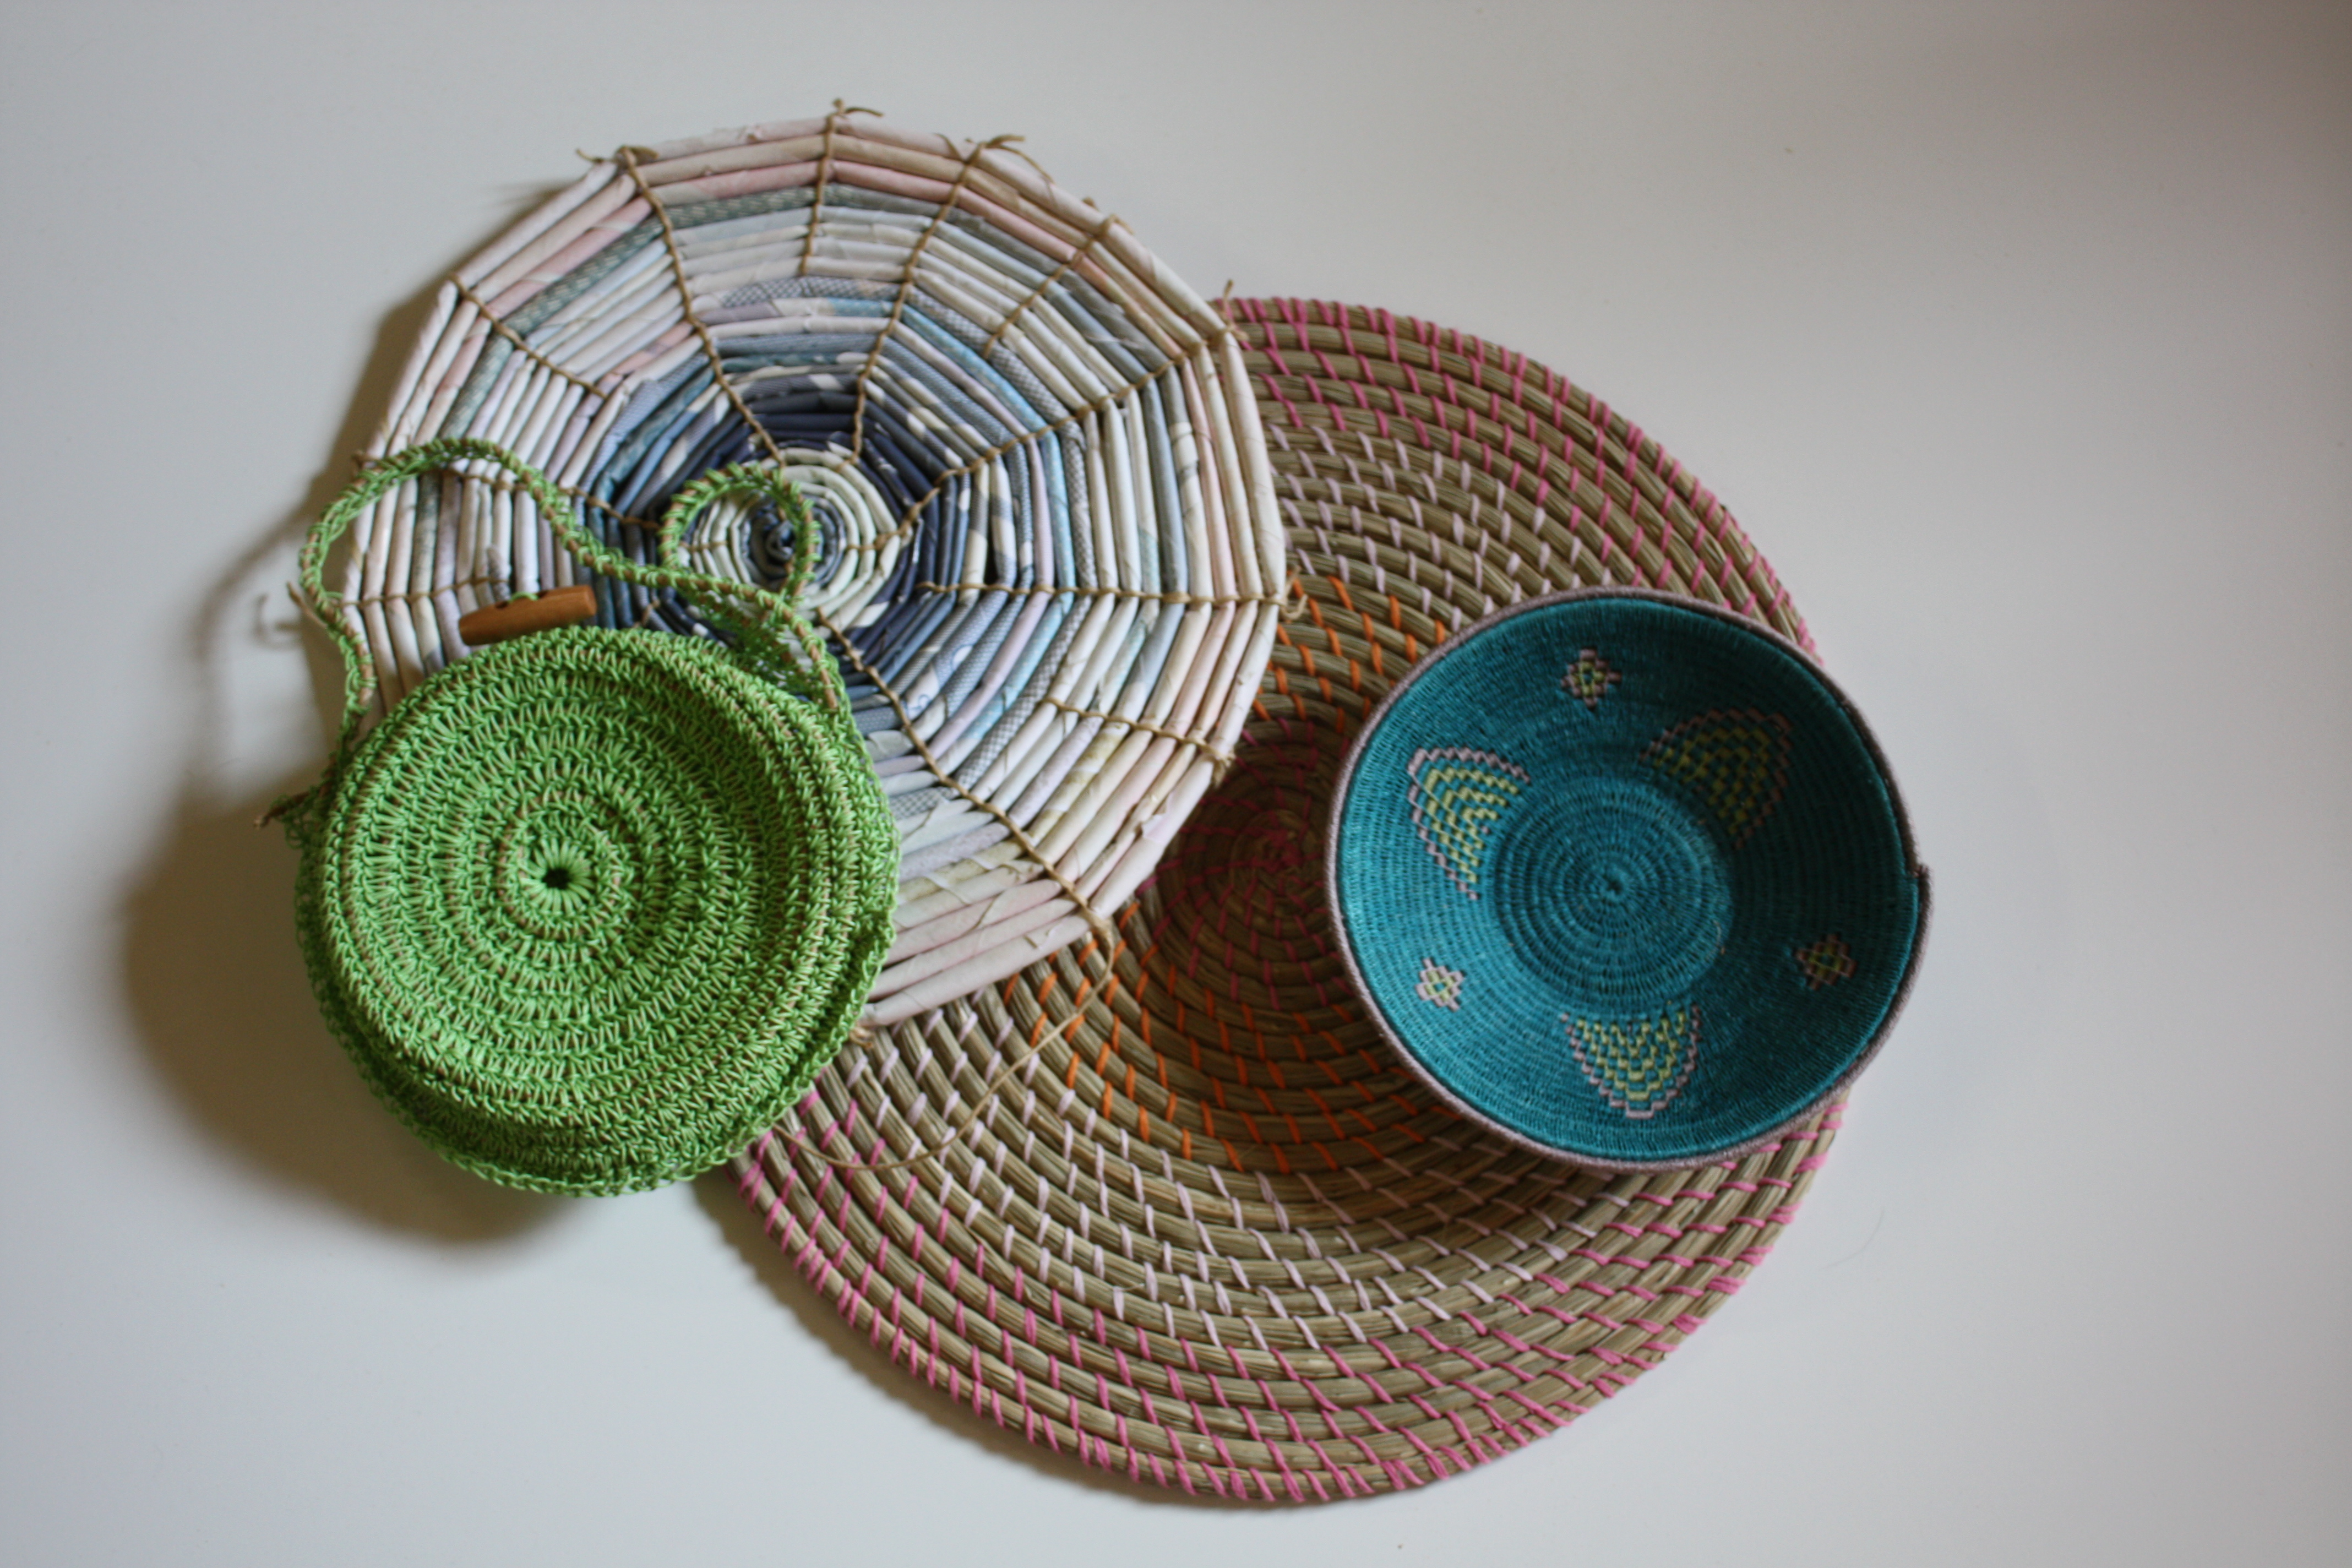 NYCxDesign 2019 The Precious Craft in Focus Festival - Basketry nycxdesign NYCxDesign 2019: The Precious Craft in Focus Festival NYCxDesign 2019 The Precious Craft in Focus Festival Basketry